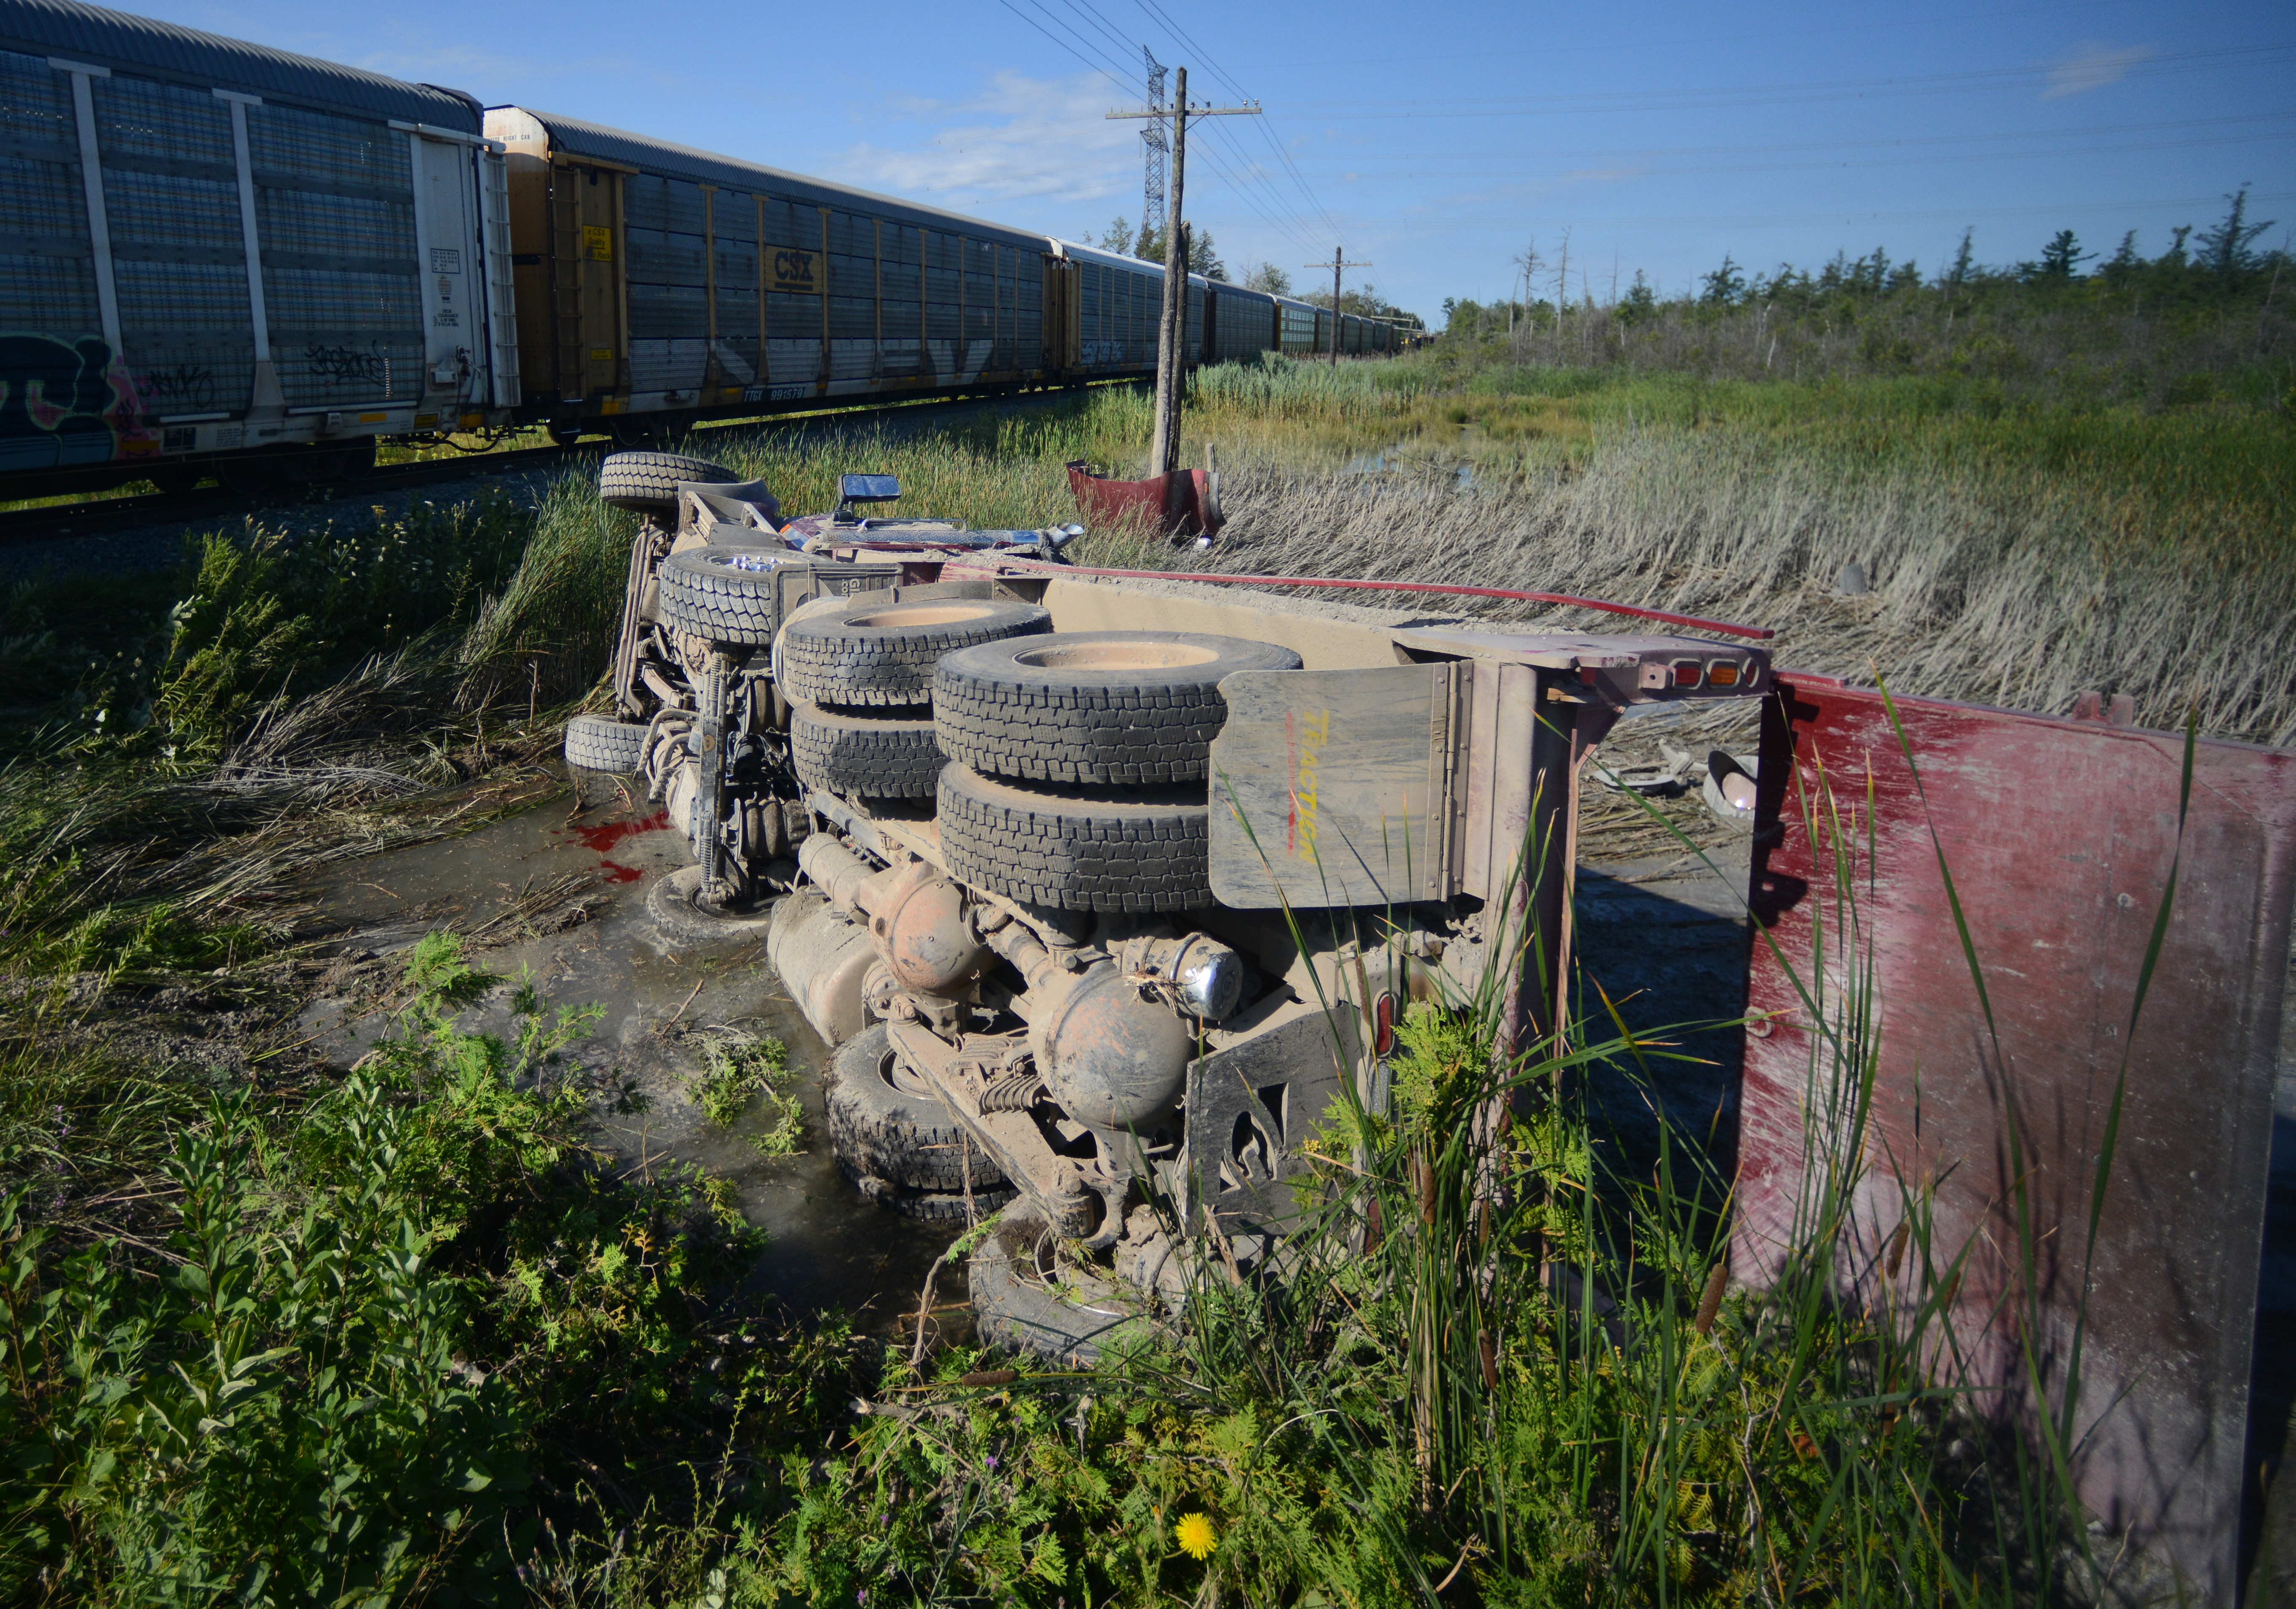 Truck driver charged after collision with train